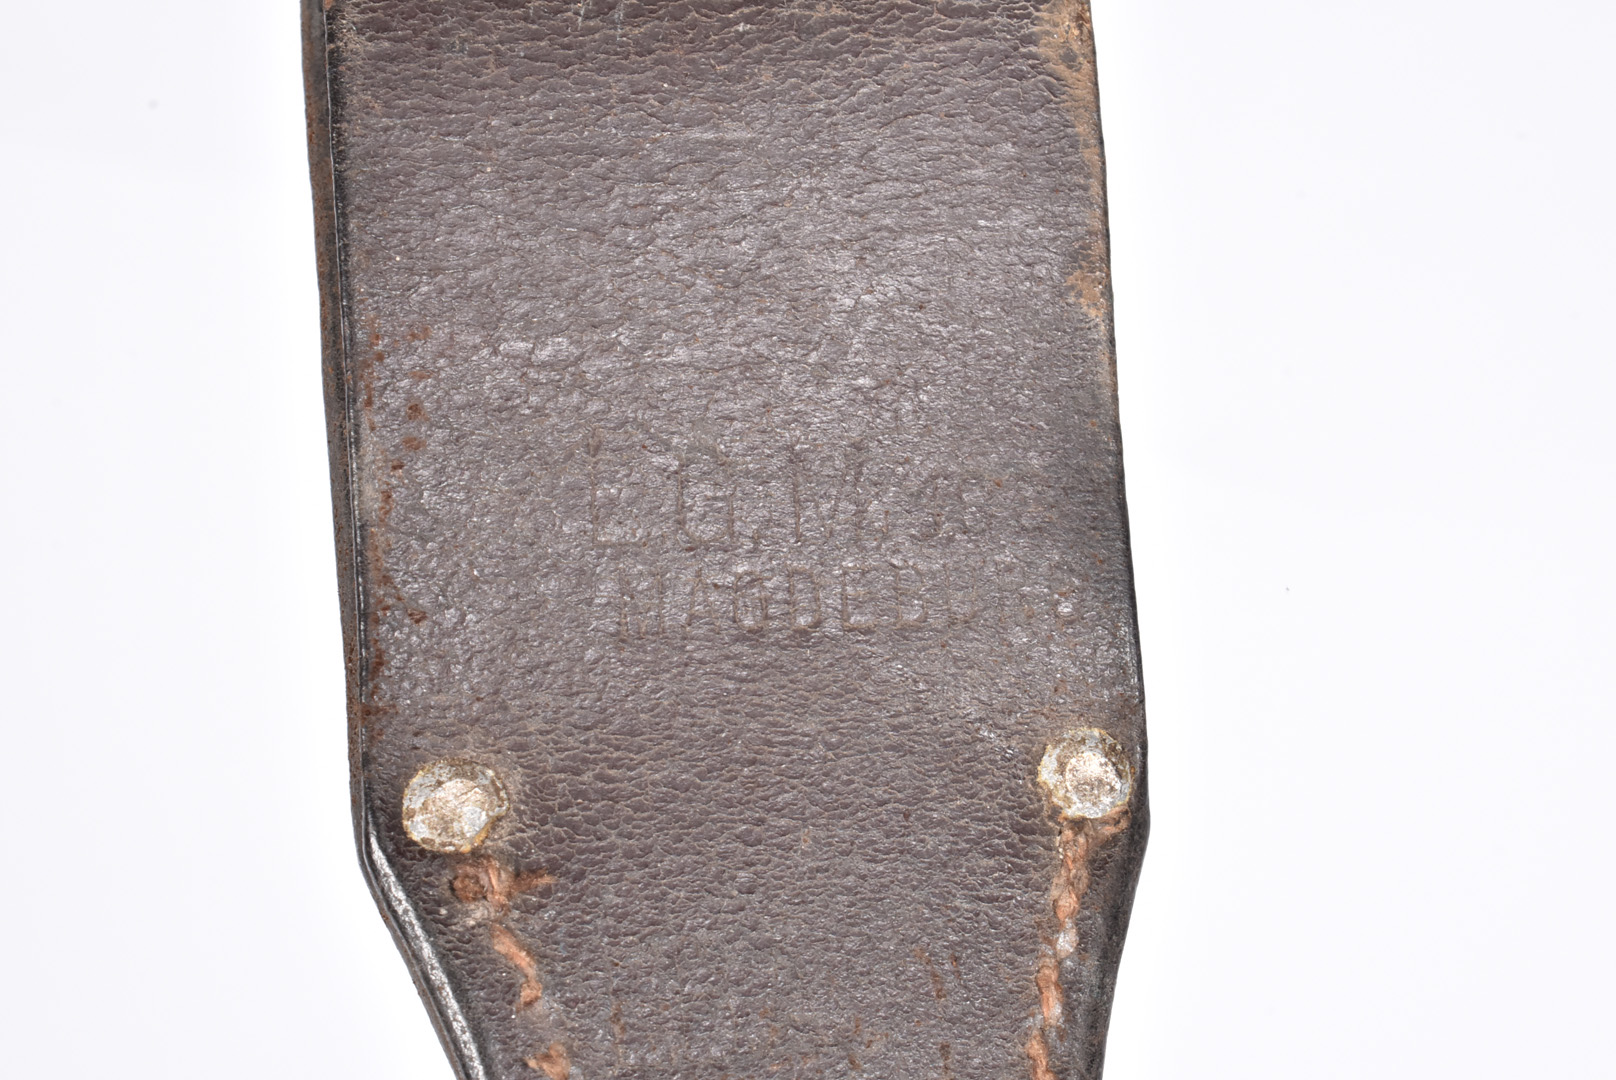 A WWII German K98 bayonet and scabbard by E.U.F Horster, dated 1940, with serial 5376, complete with - Image 5 of 8